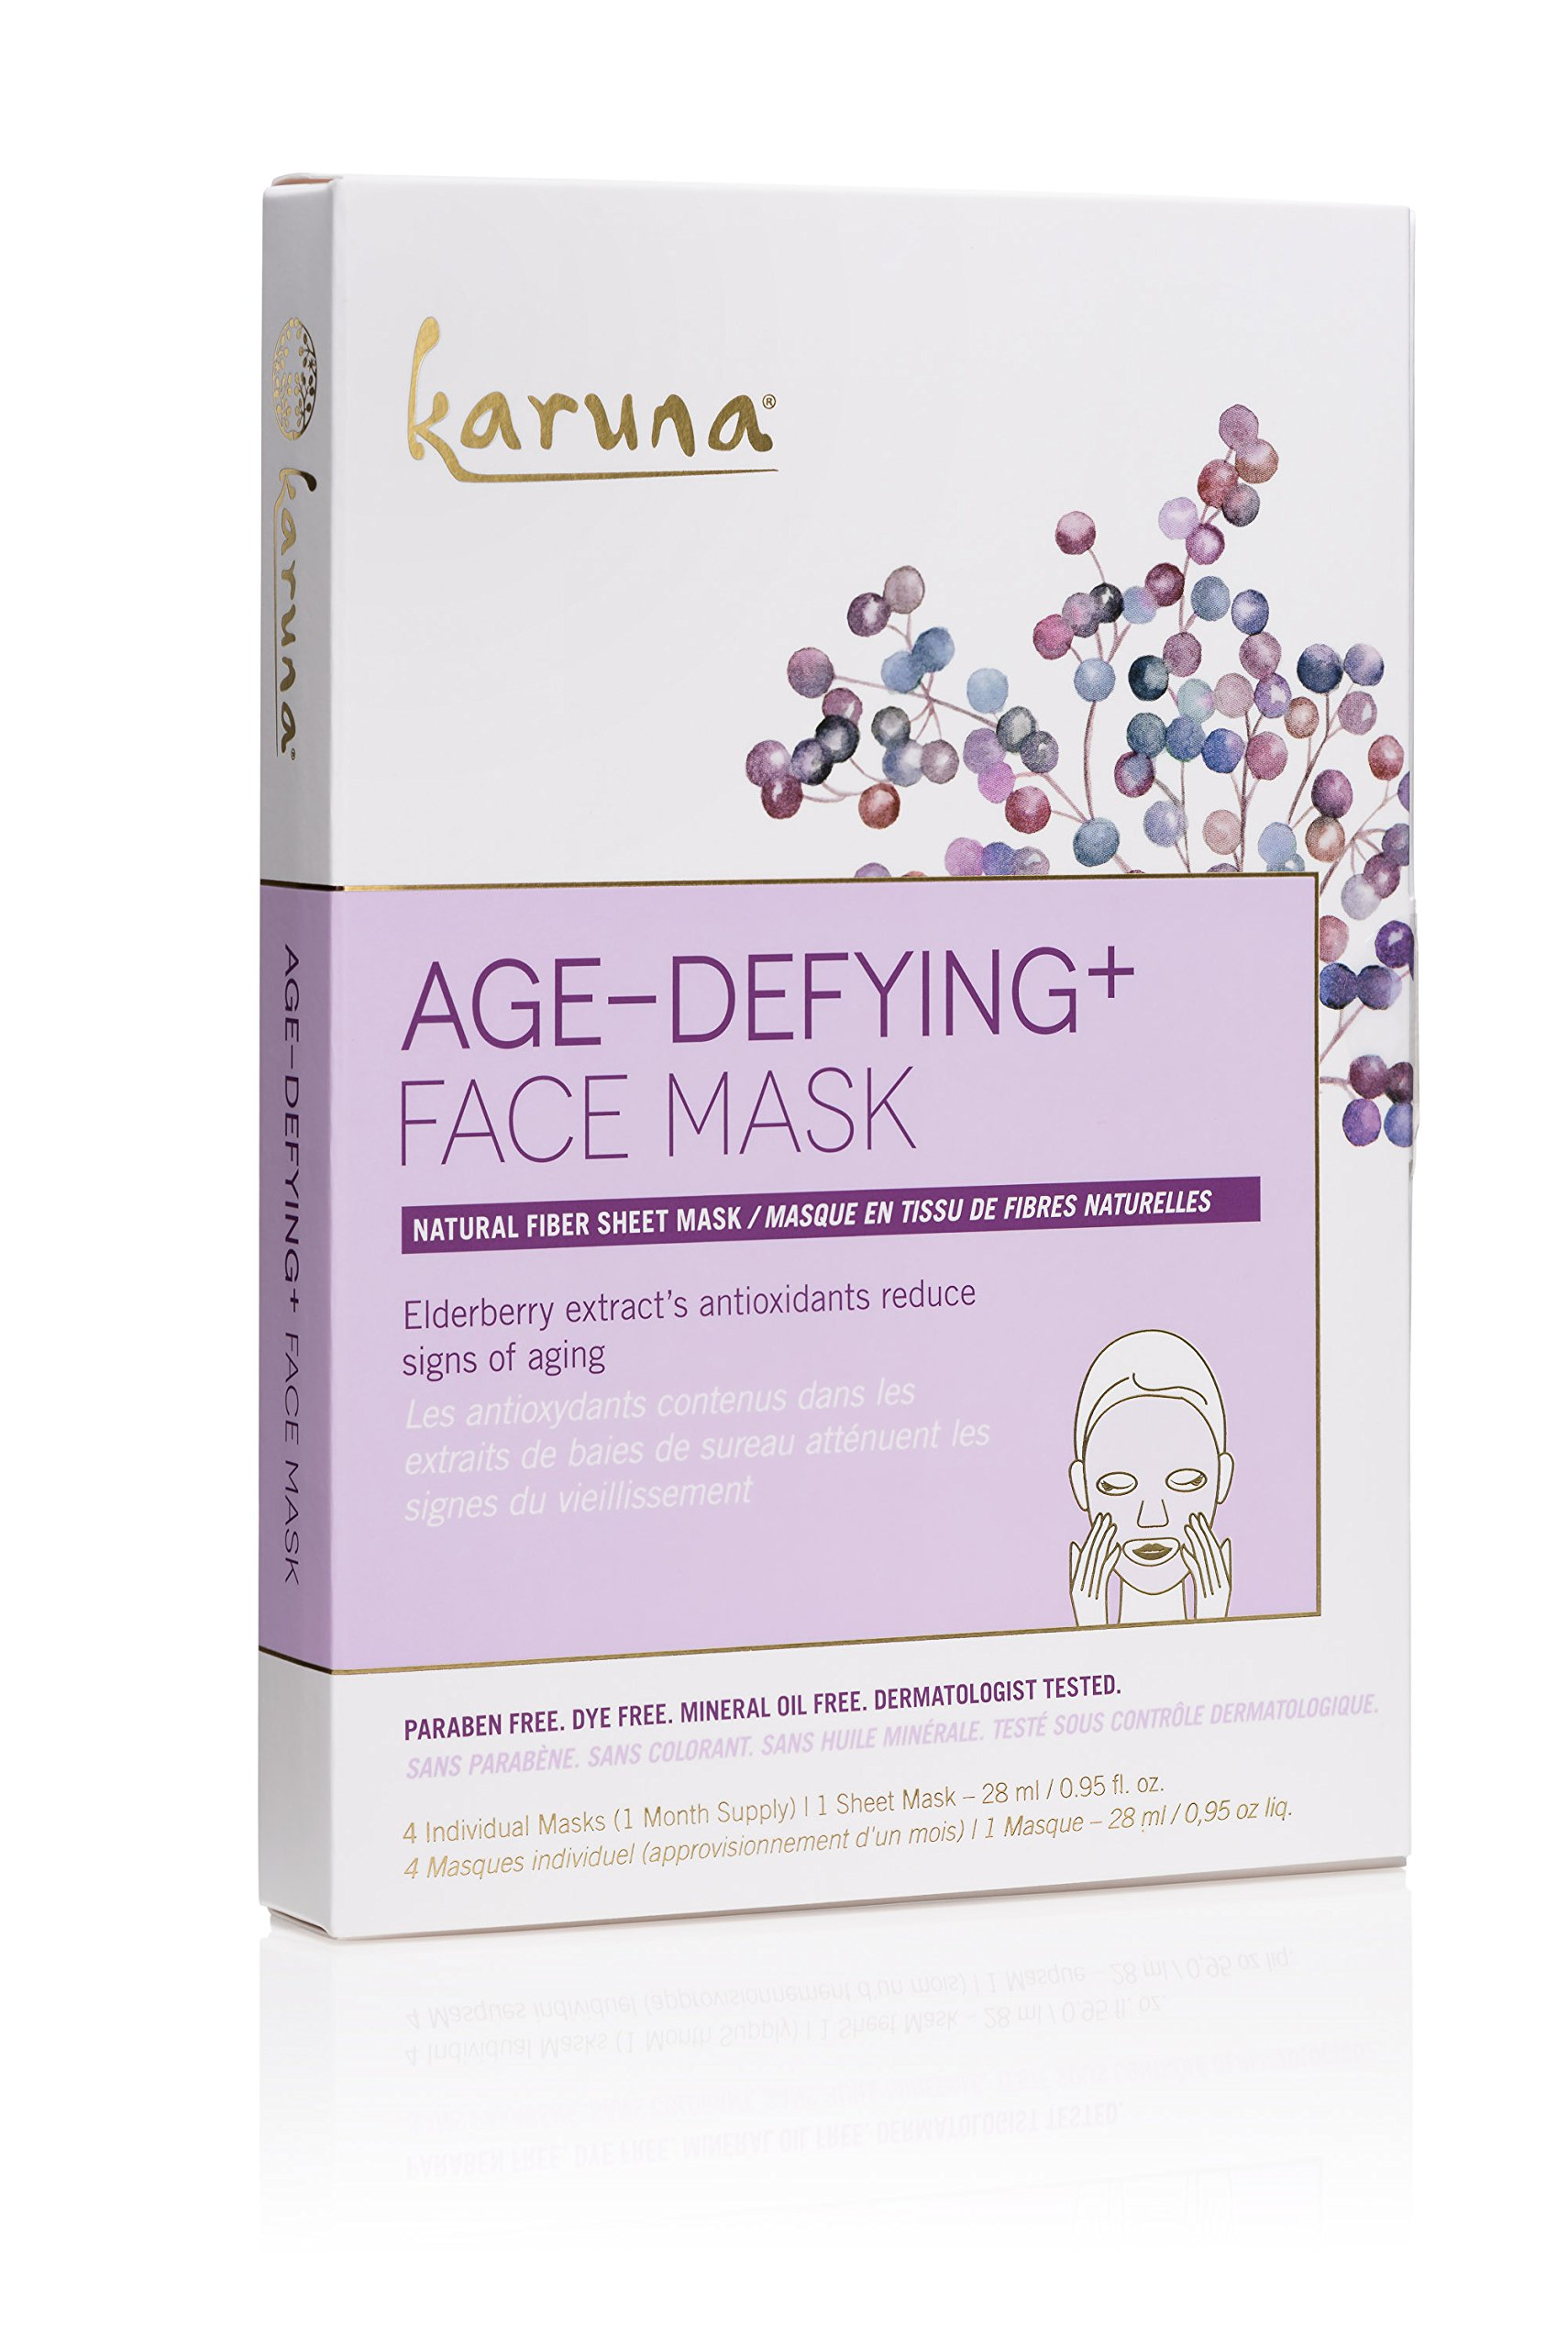 Karuna Age-Defying+ Face Mask Box, 4 CT